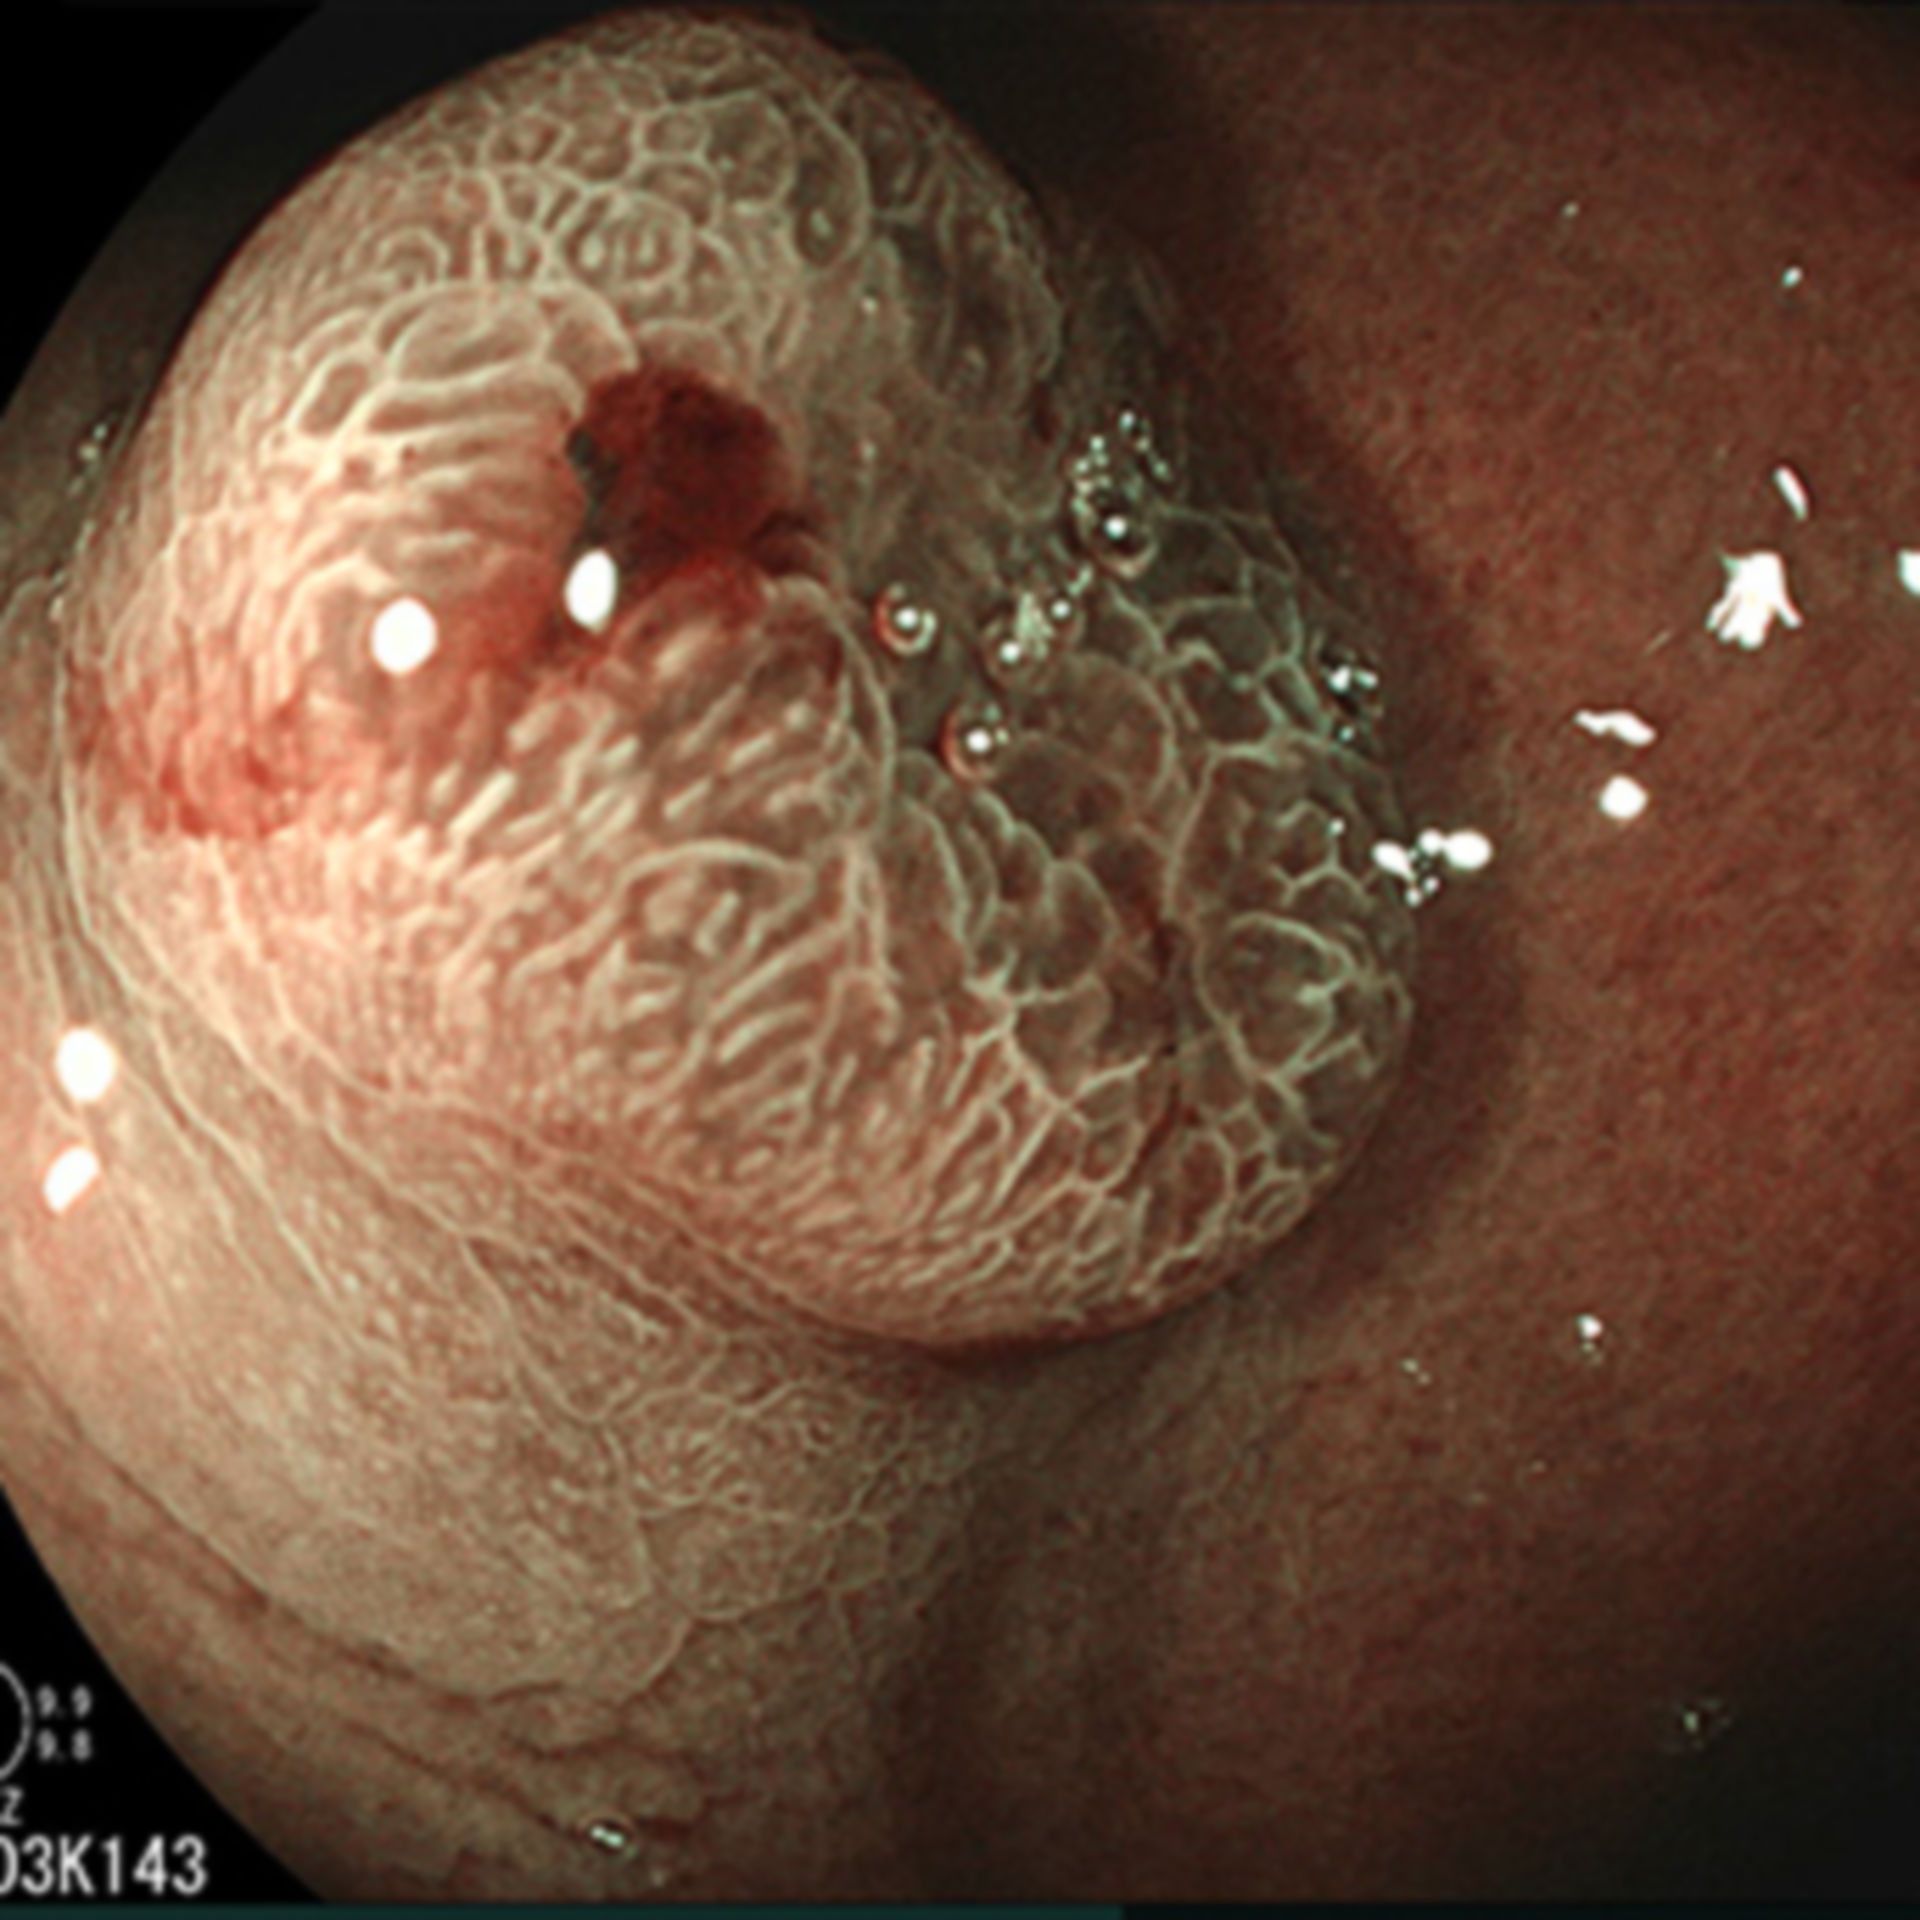 Gastric cancer imaged with BLI for visualization of the mucosal surface and vascular pattern network